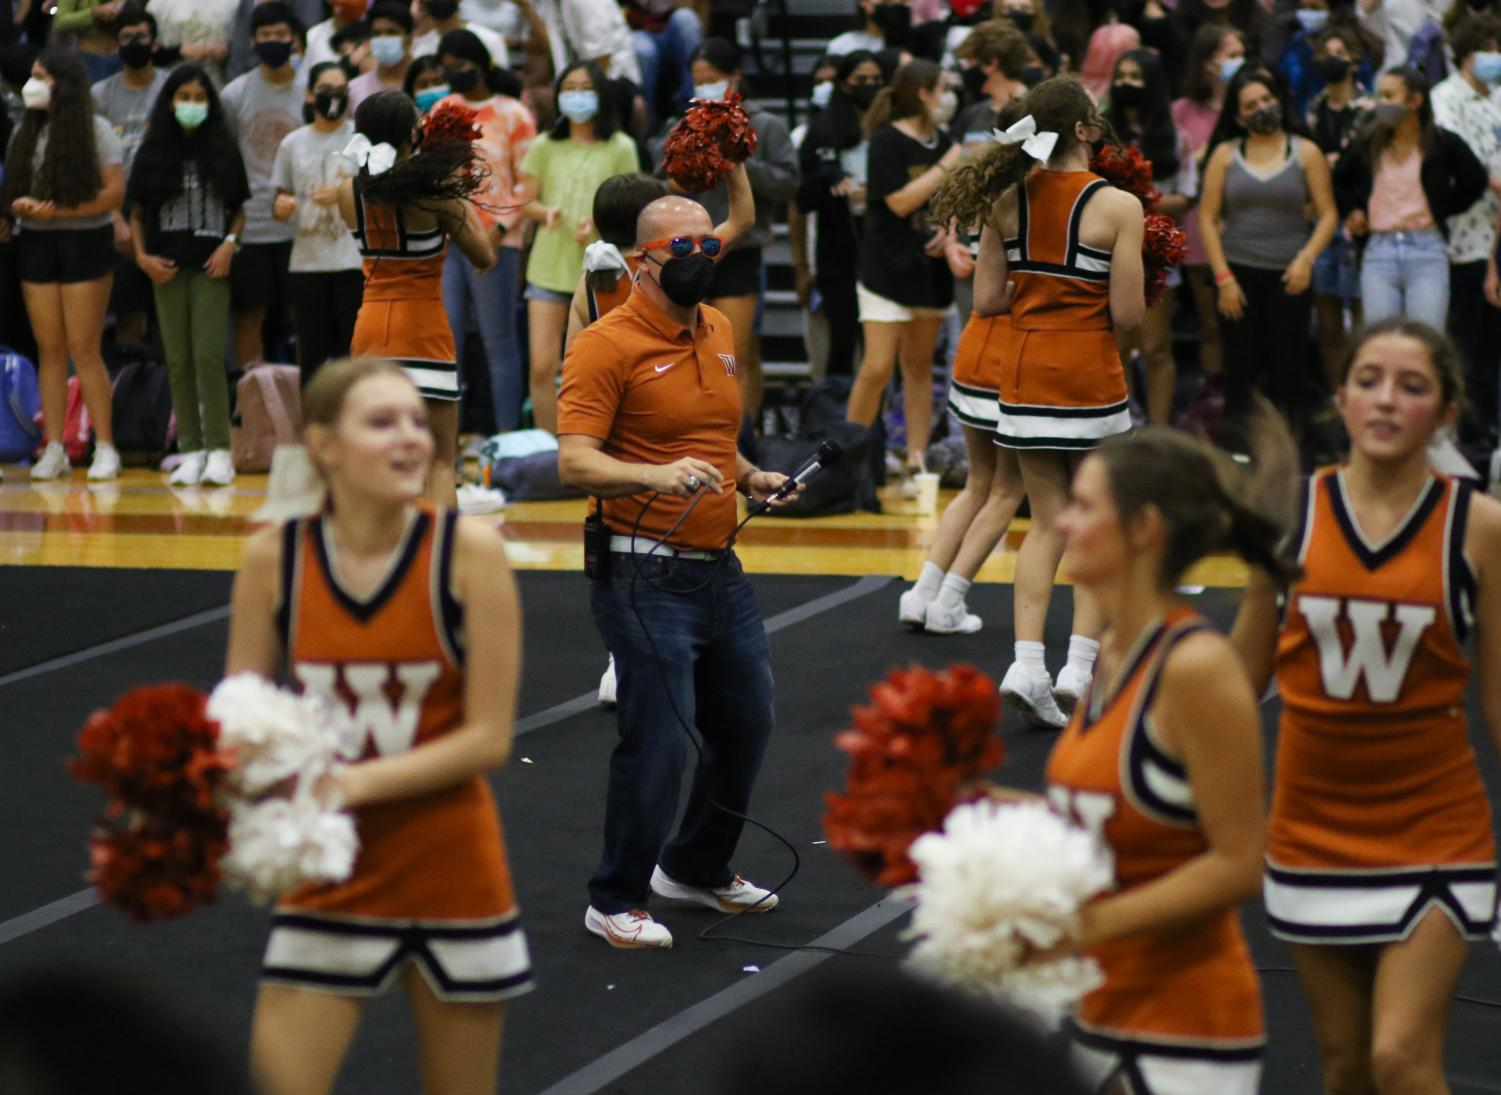 Students+Attend+First+Pep+Rally+of+Year+Amid+Pandemic